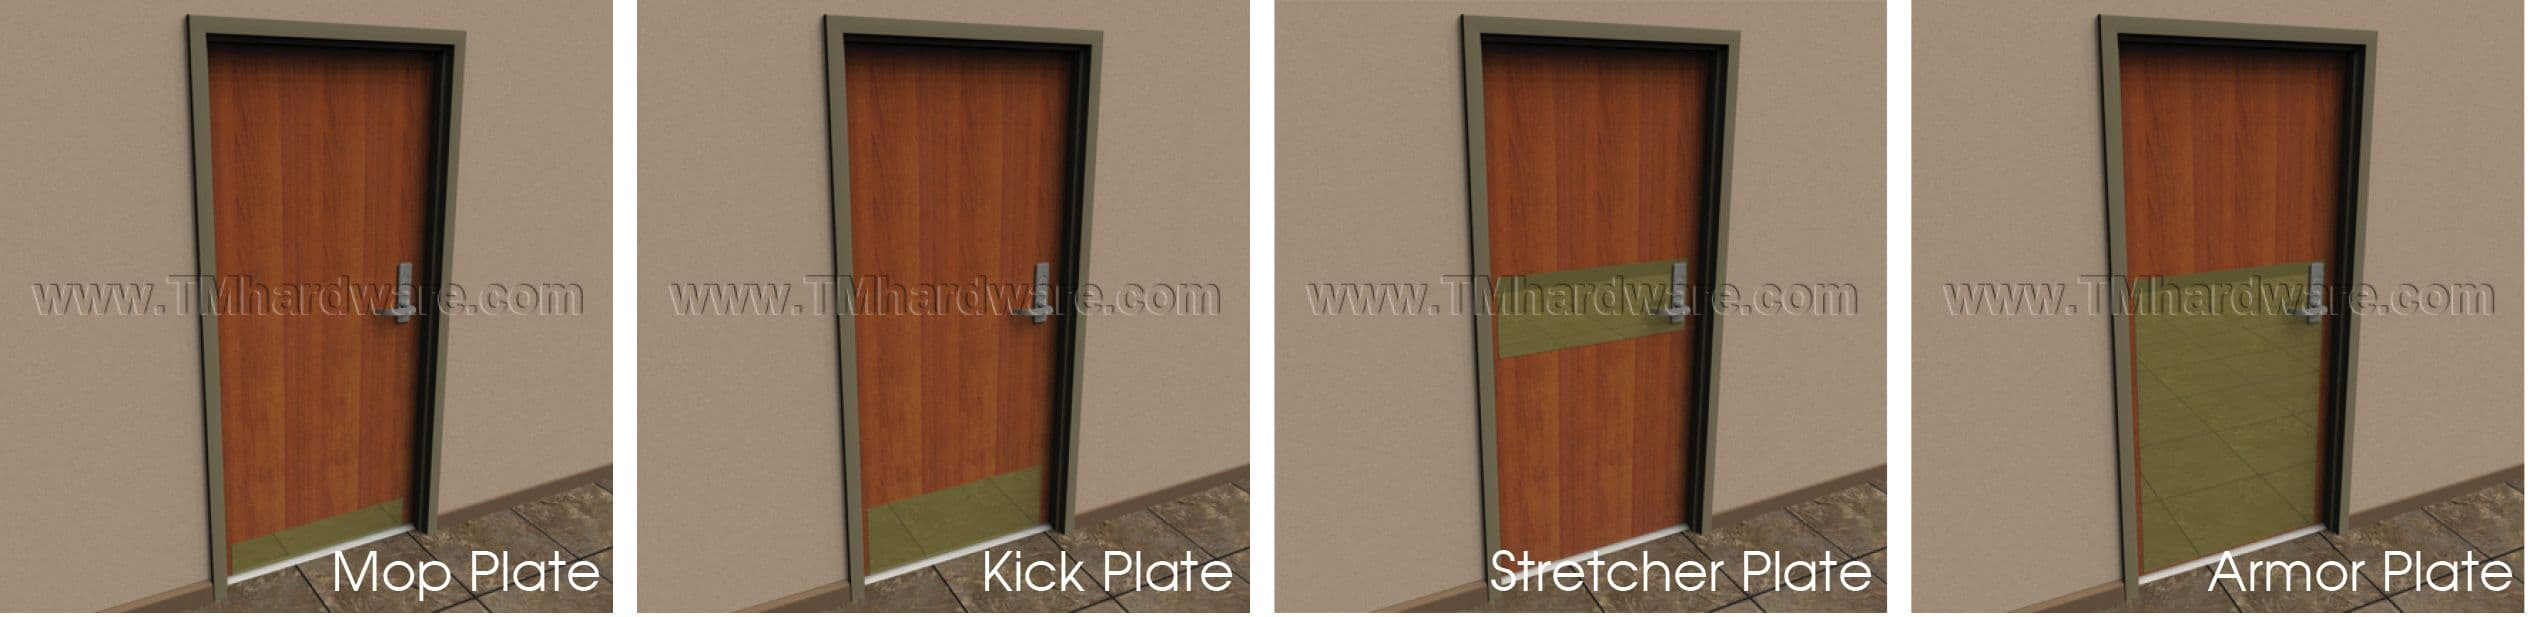 Armor Plate 13\ -48\ H x Up to 48\ W & Rockwood Clear Plastic Kick Plate .125\